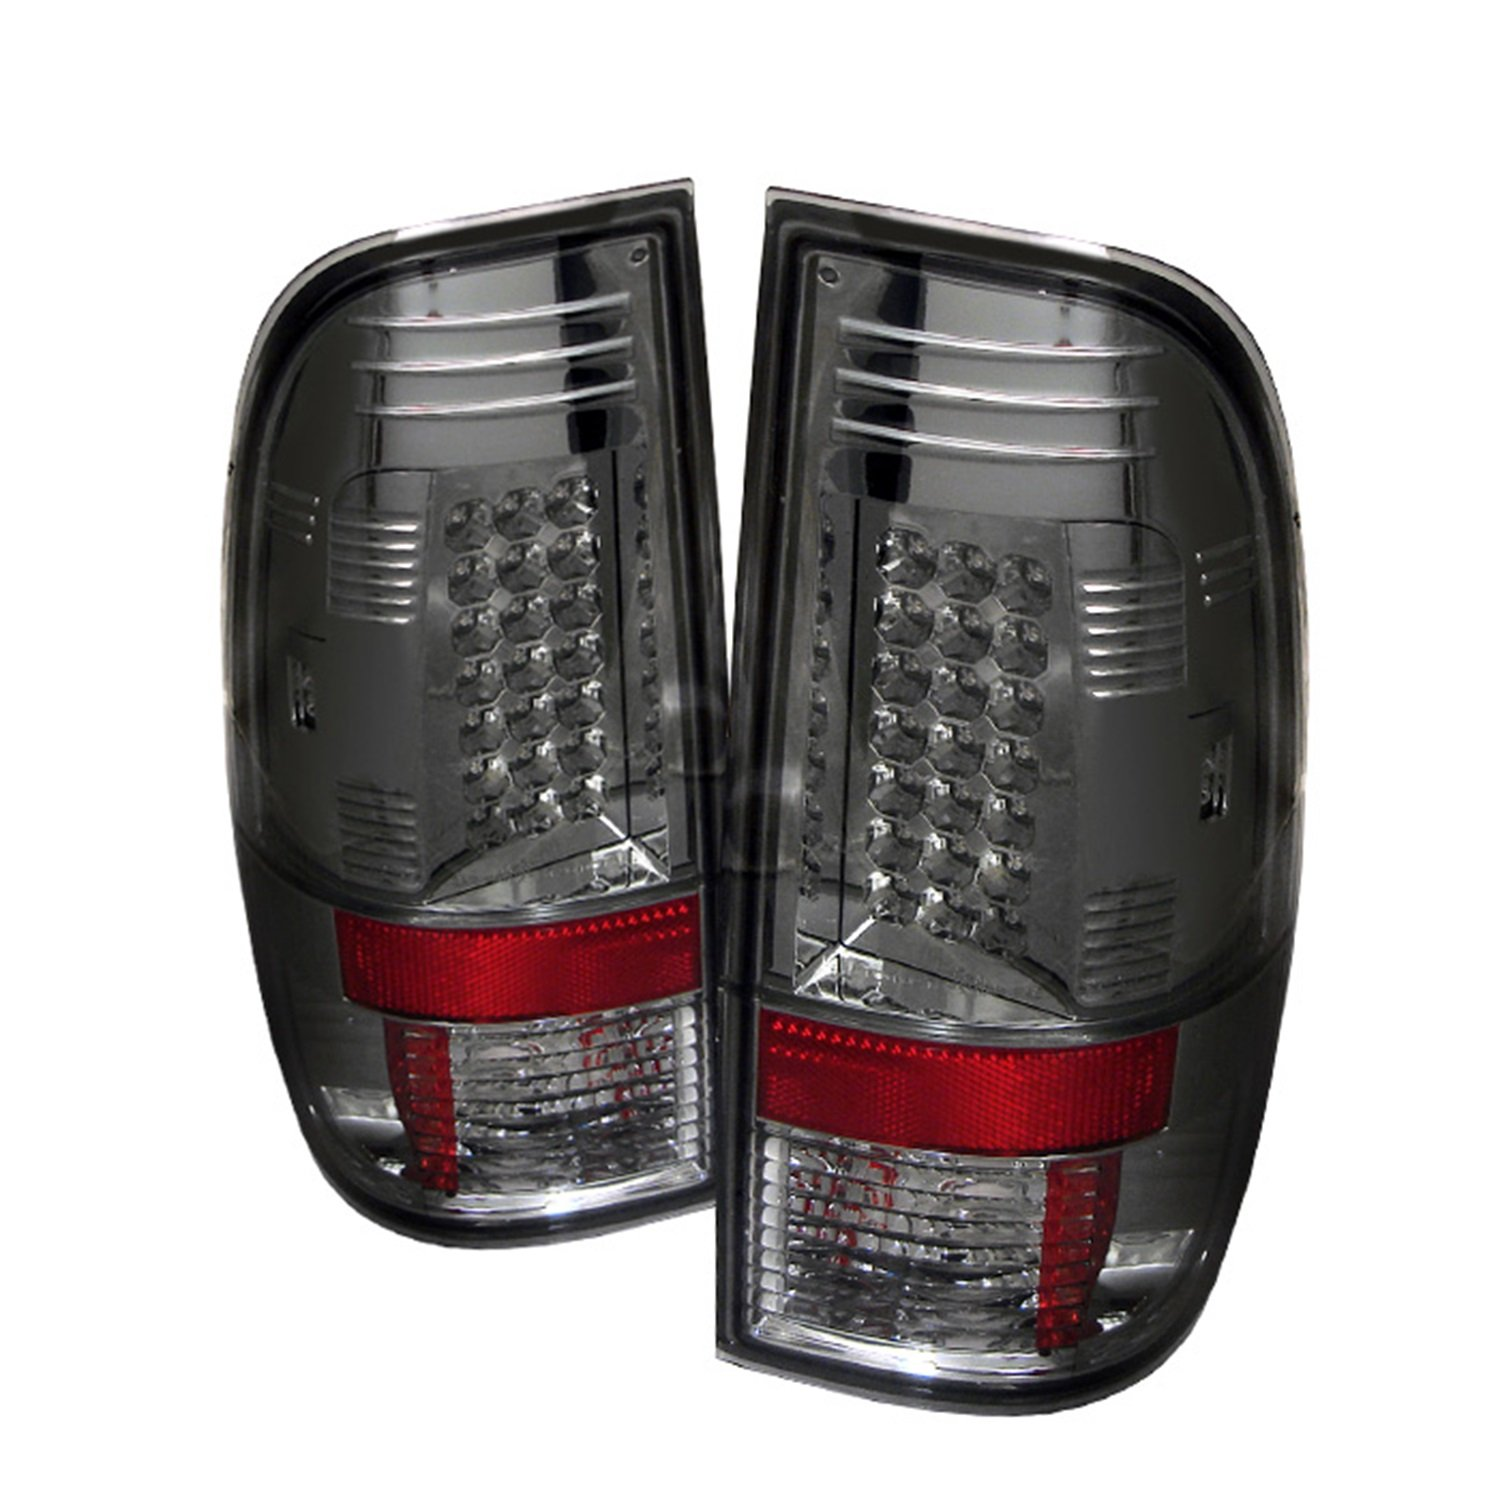 Amazon.com: Spyder Auto ALT-YD-FS07-LED-SM Smoke LED Tail Light 2 Pack:  Automotive